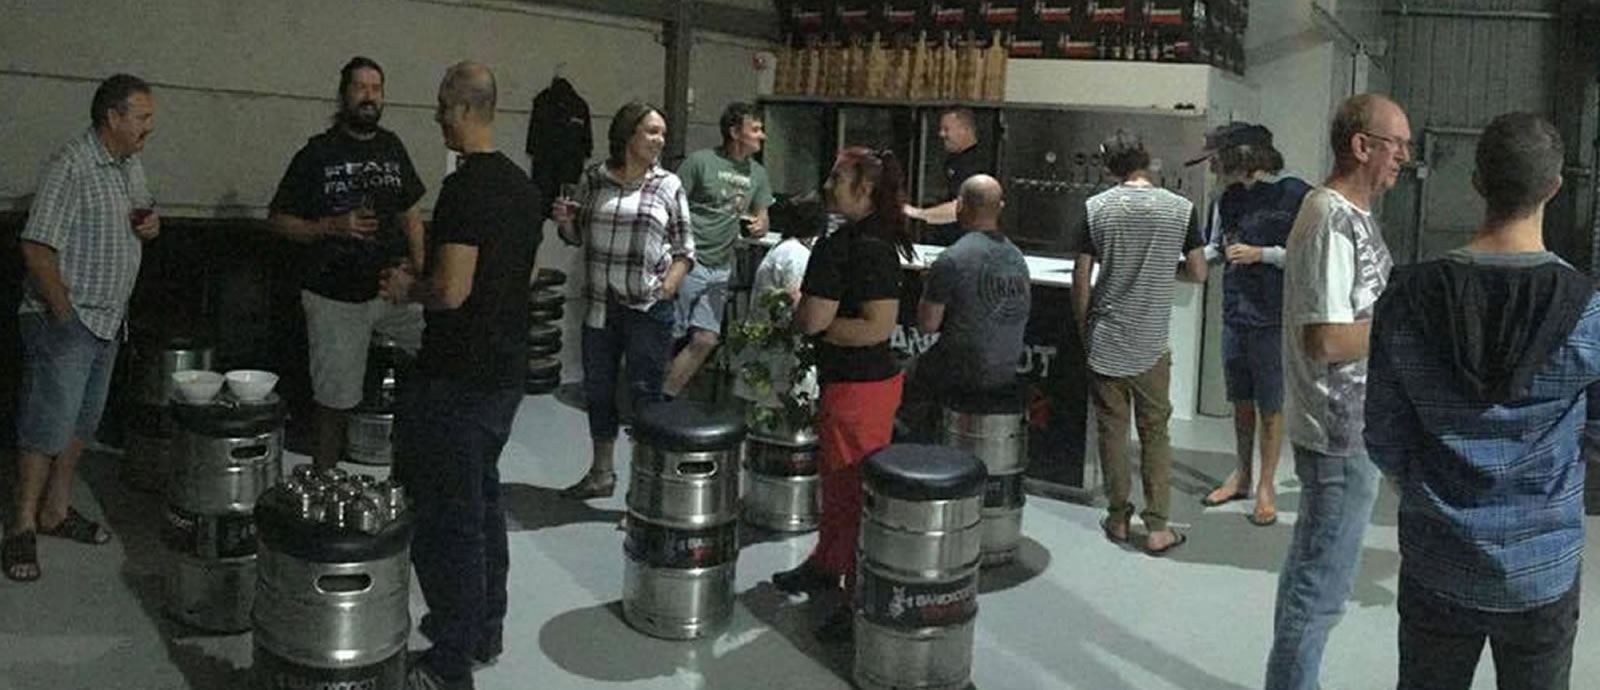 The Bandicoot brewery in full swing